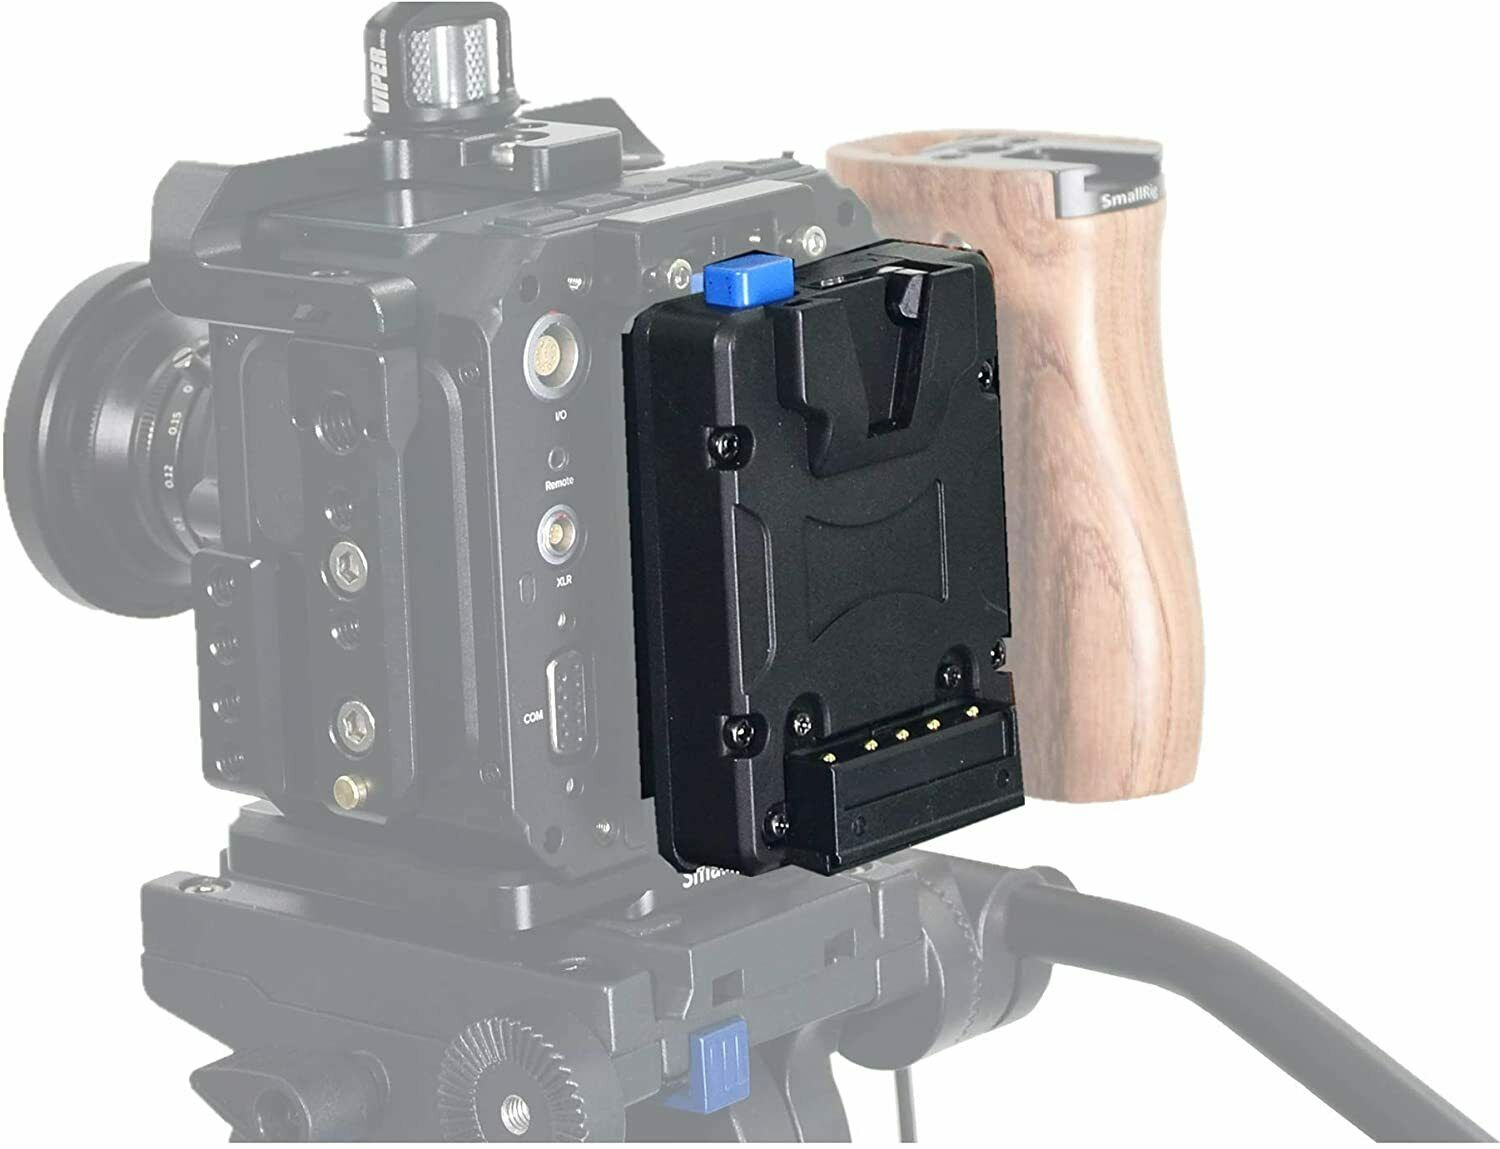 SONGING FXLION Nano LNP V-Lock/V-Mount Converting Plate Which Make it Possible